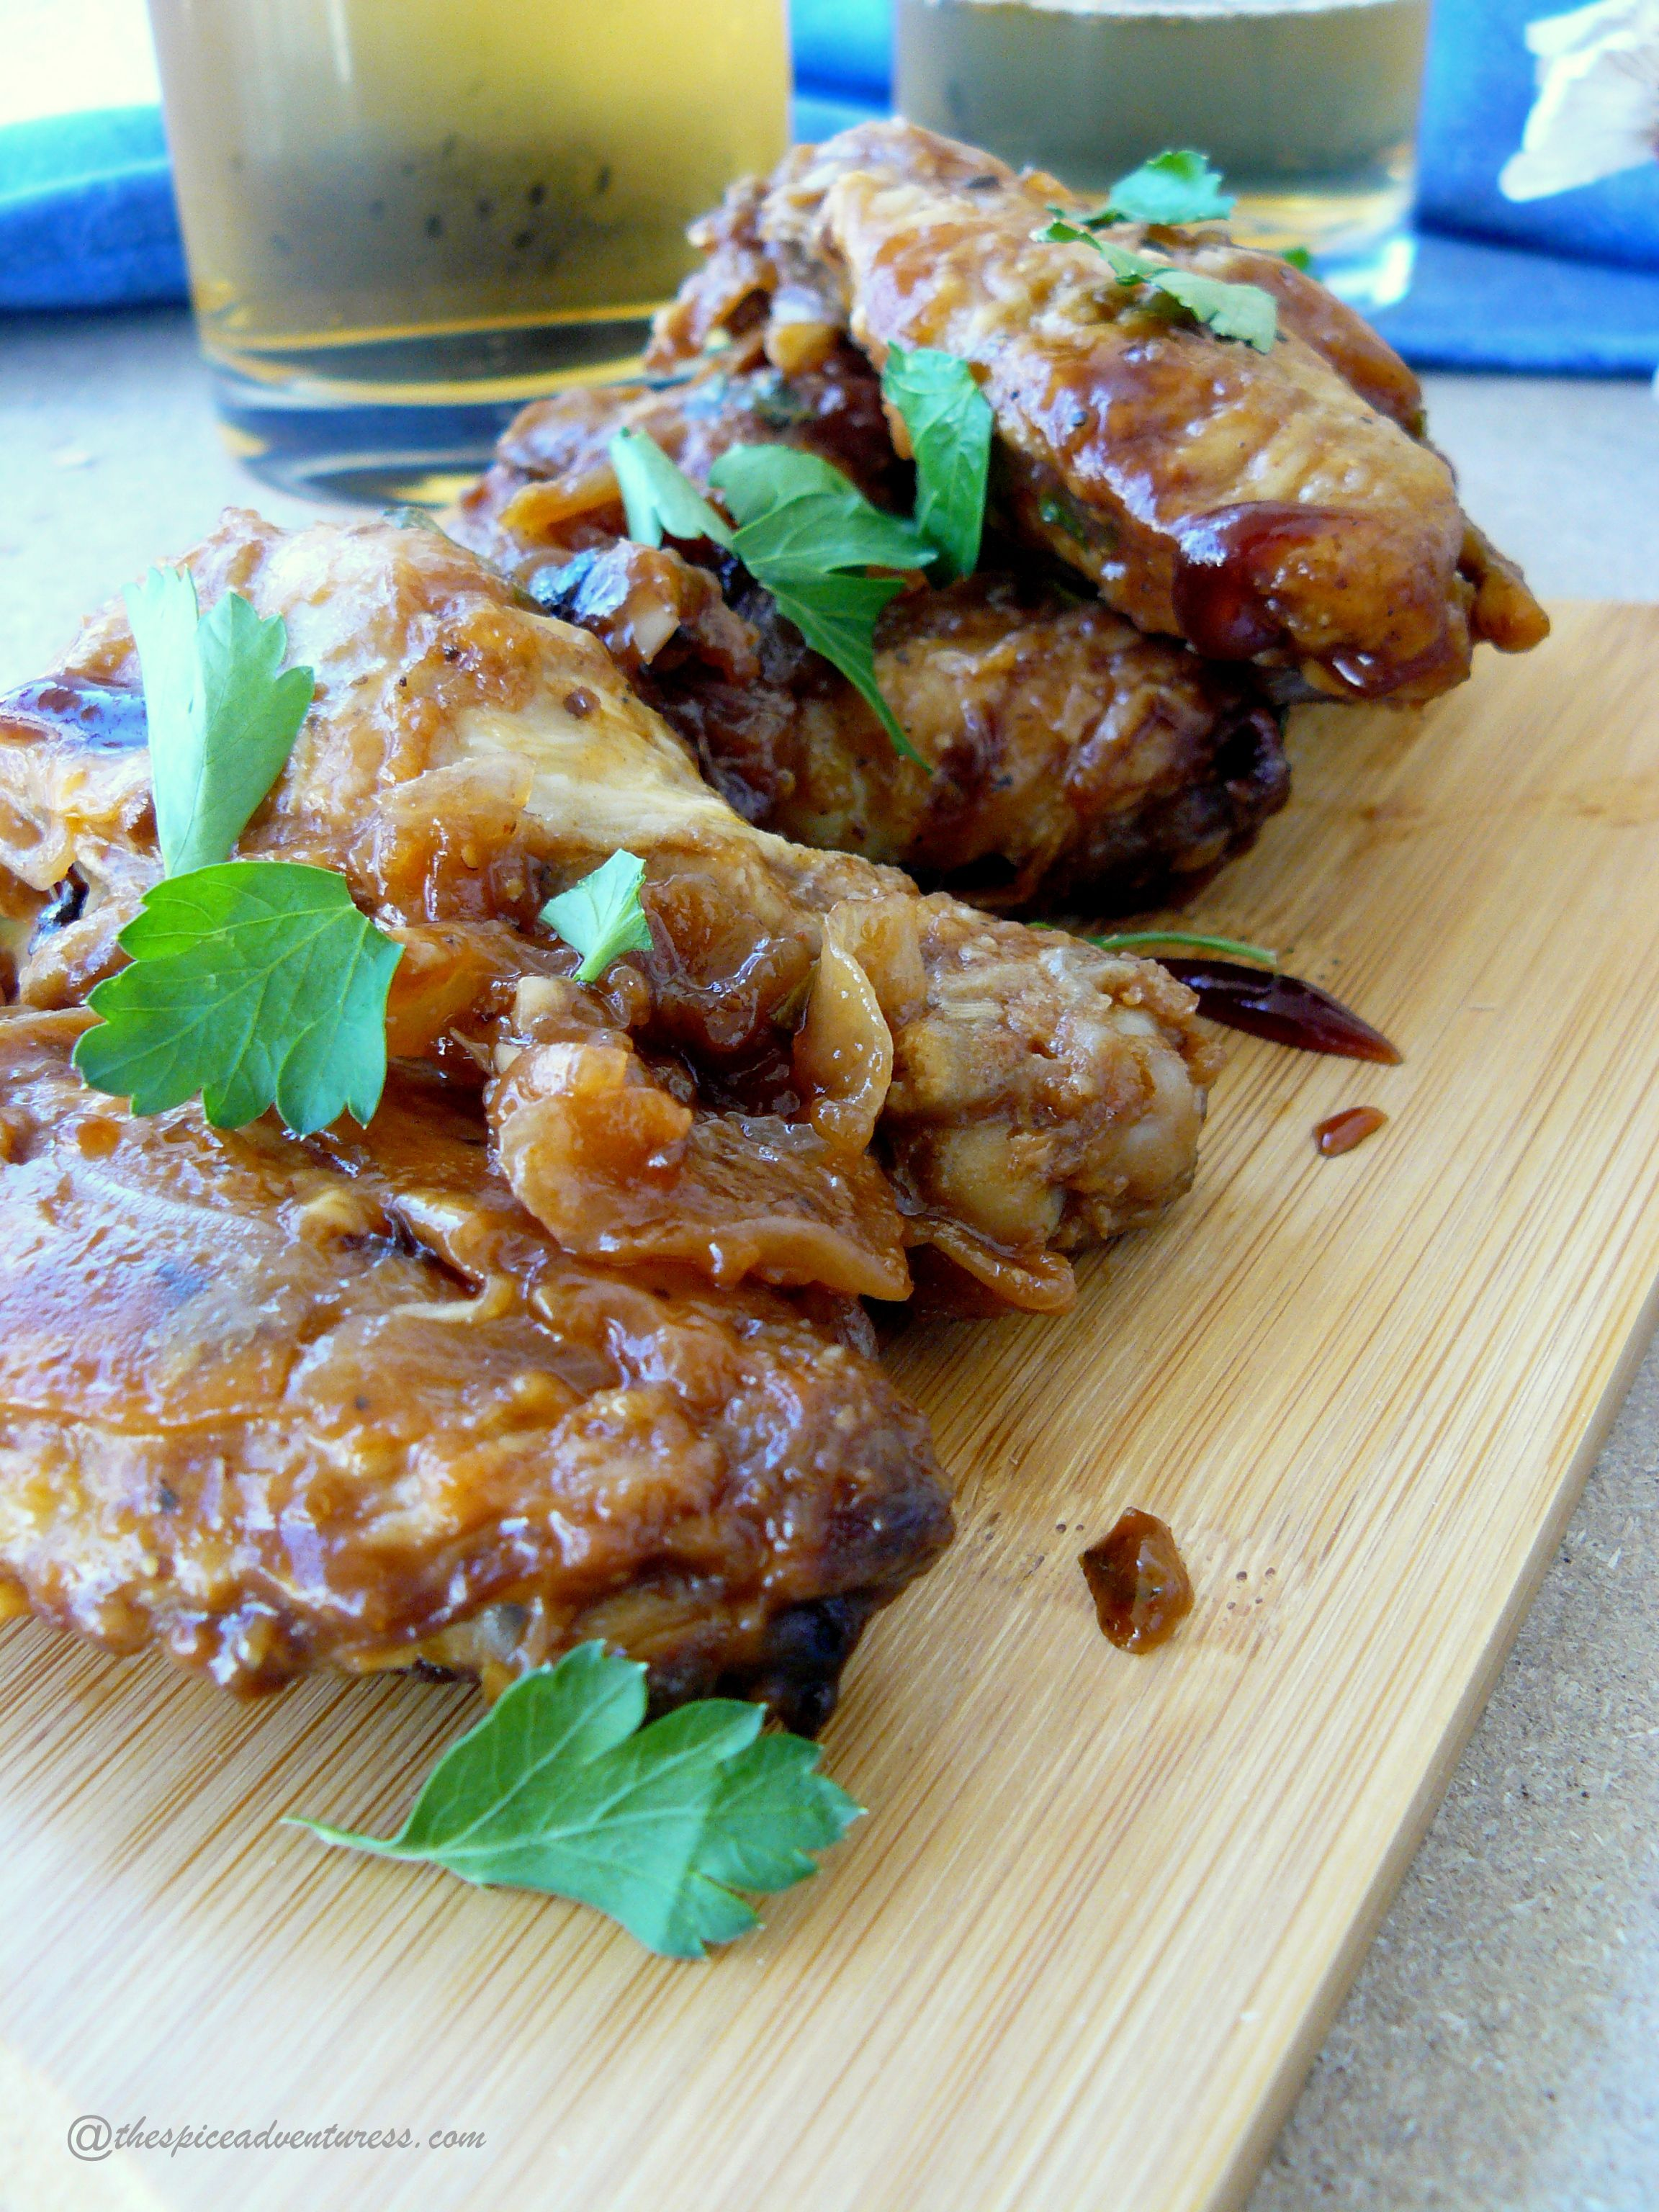 Barbecue Chicken Wings @thespiceadventuress.com